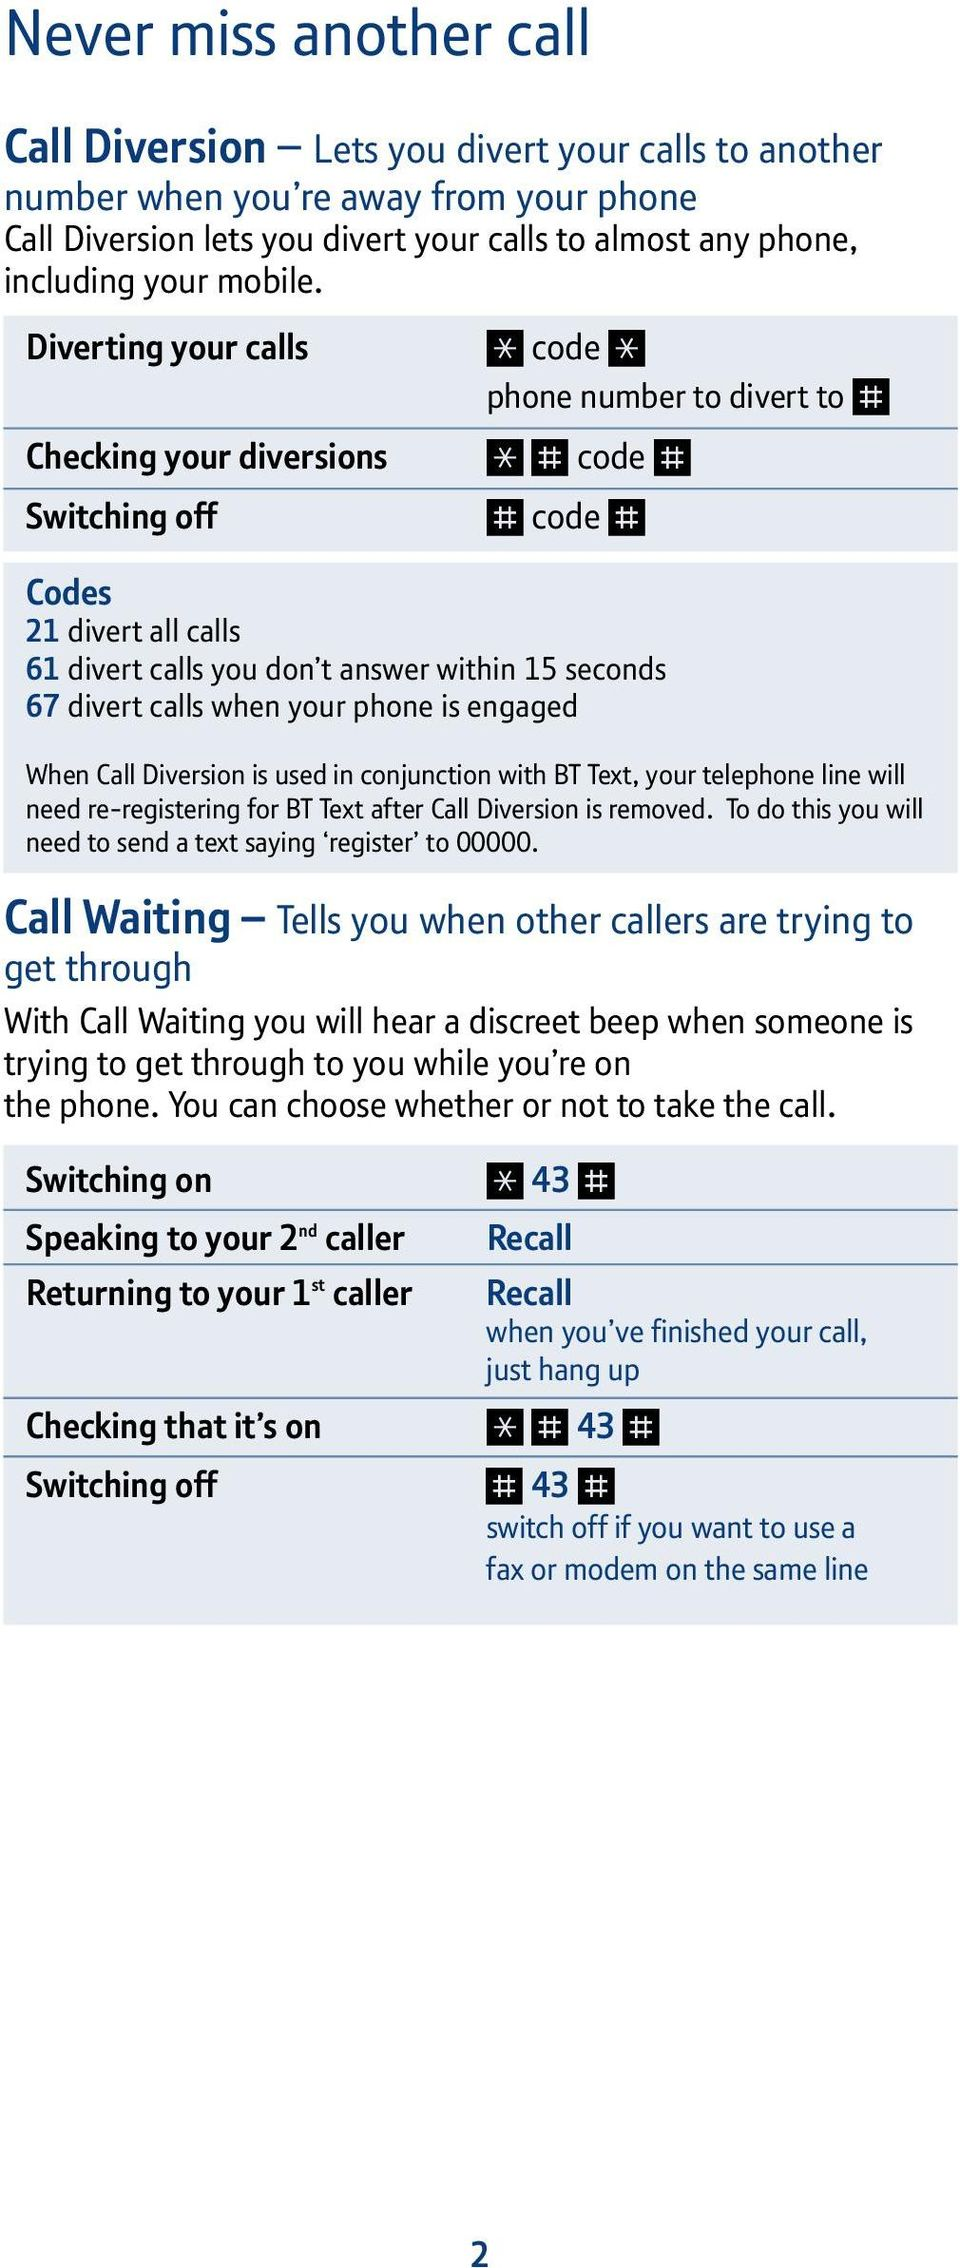 Diverting your calls code phone number to divert to Checking your diversions code Switching off code Codes 21 divert all calls 61 divert calls you don t answer within 15 seconds 67 divert calls when